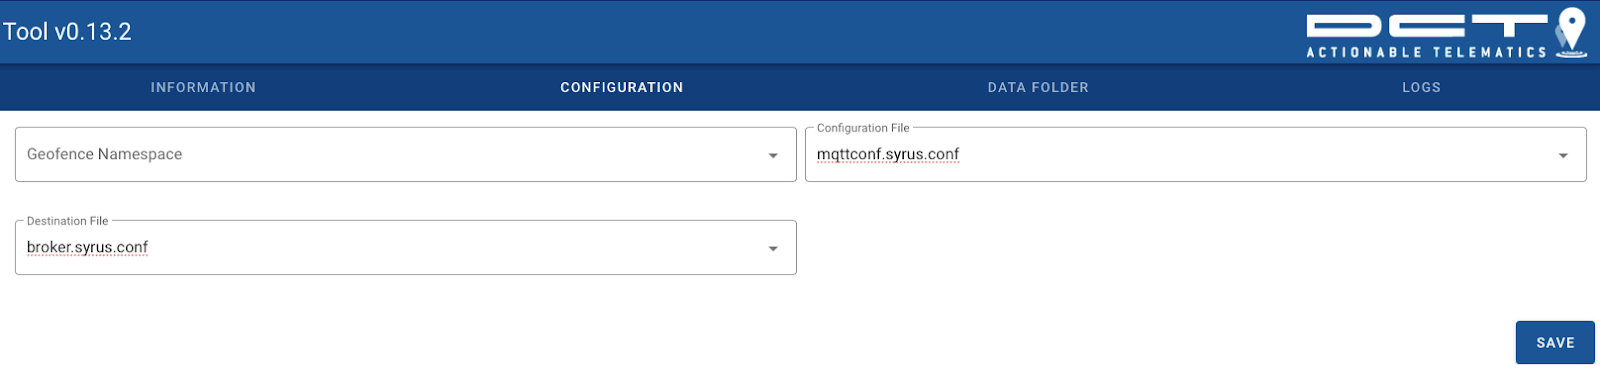 syrus 4 management tool configuration and destination file